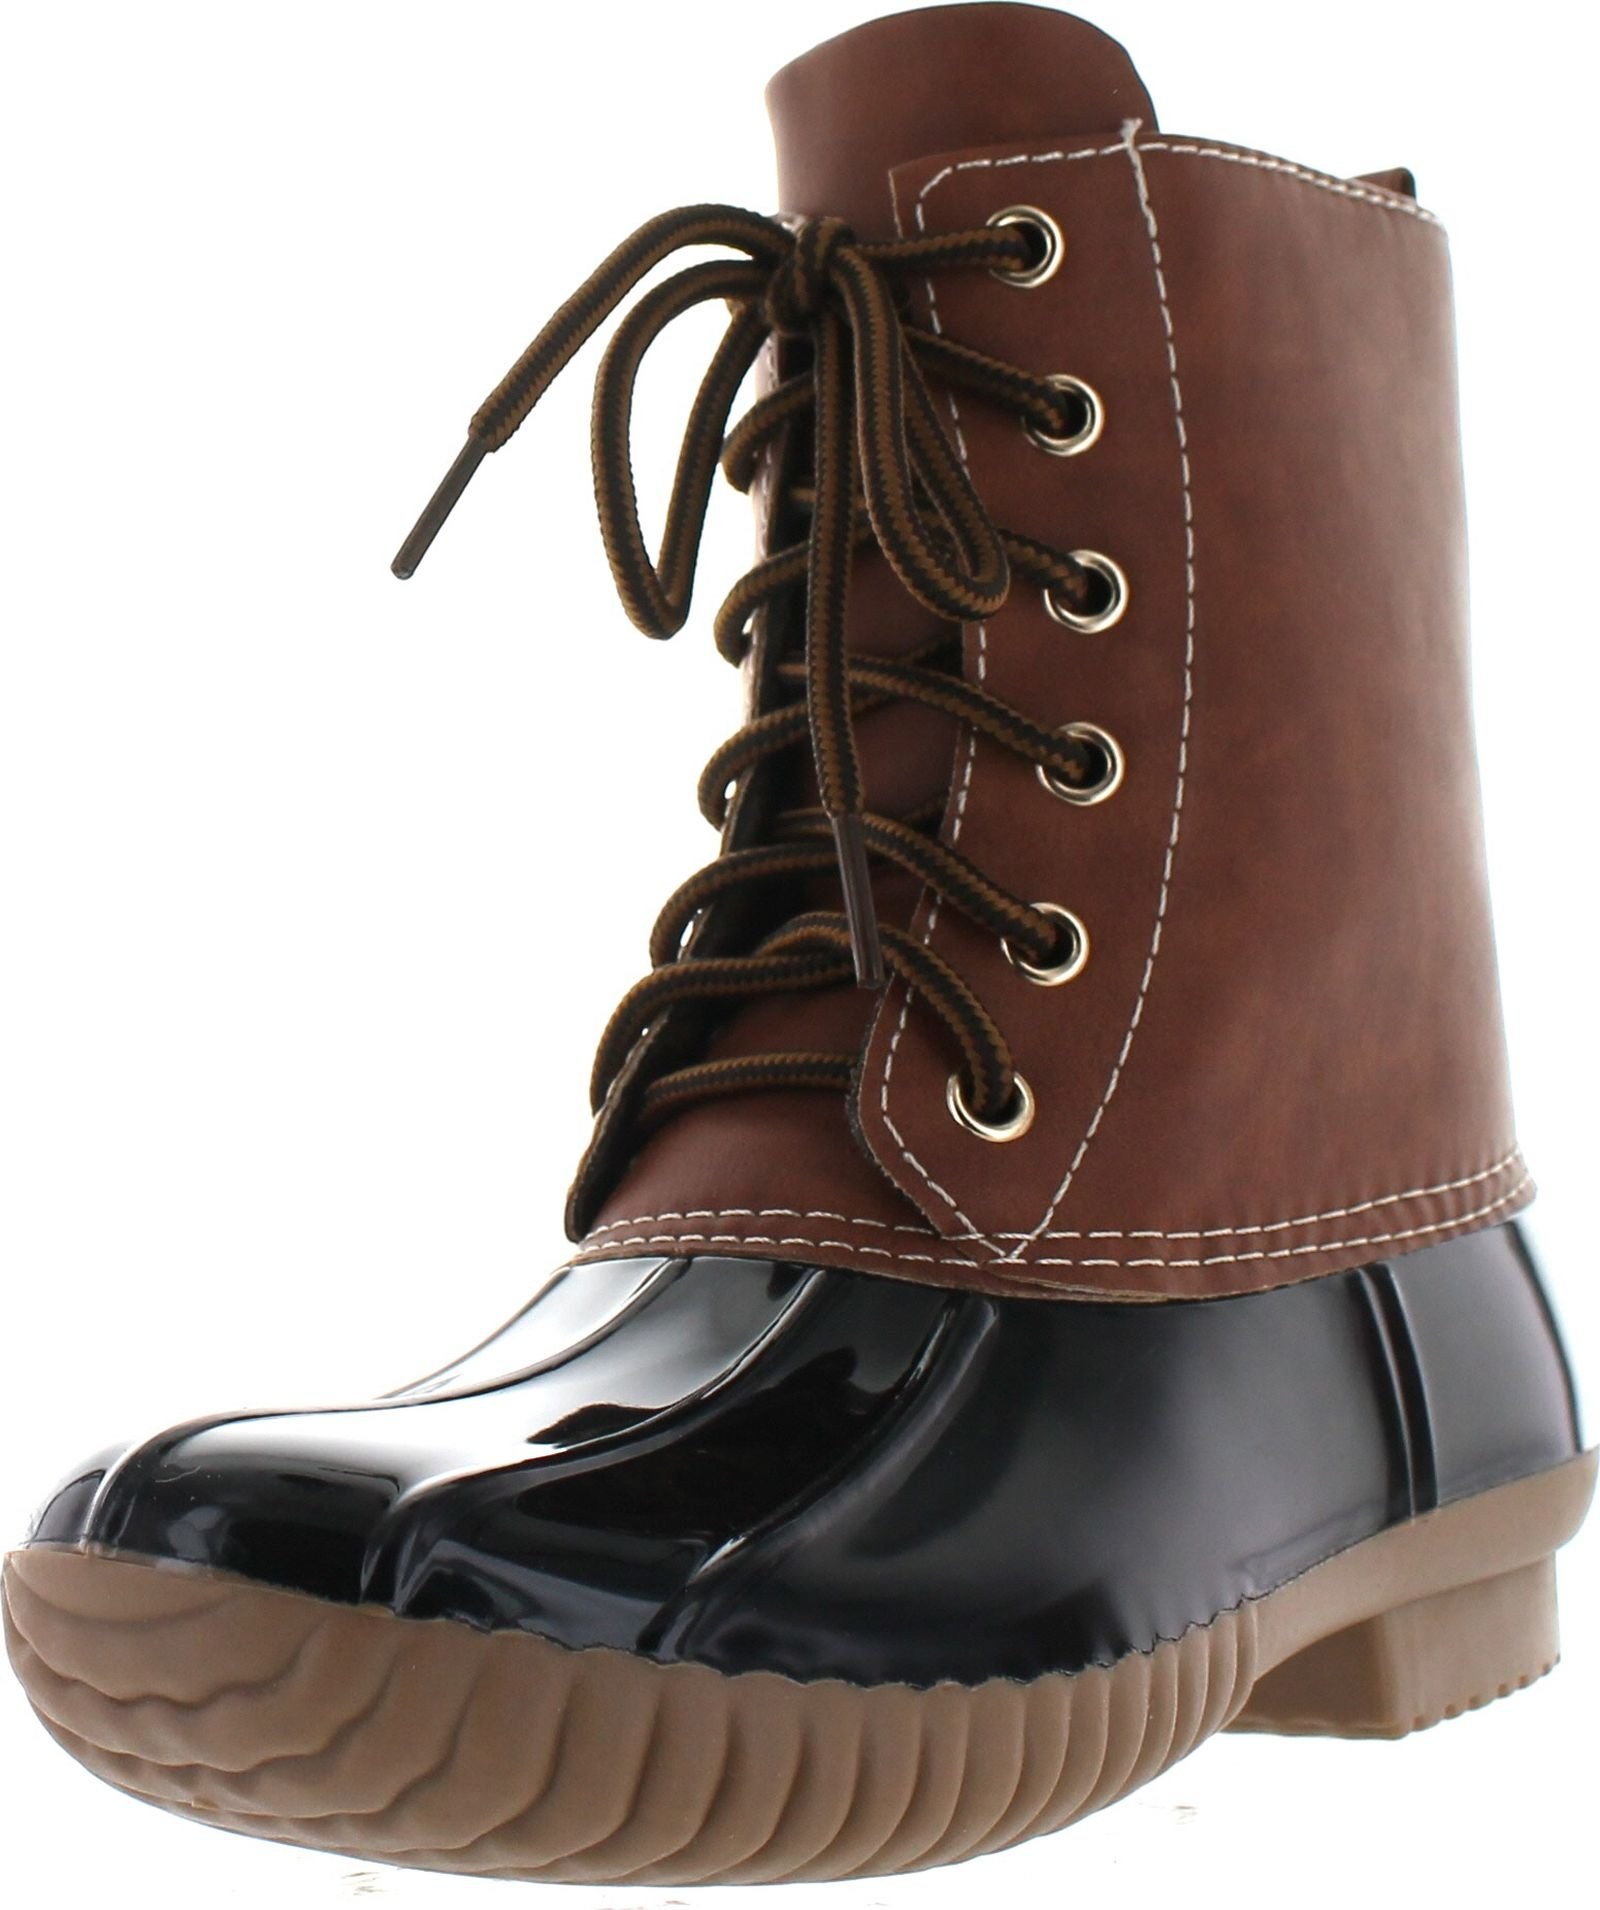 AXNY Dylan Women's Lace Up Two Tone Combat Style Calf Rain Duck Boots,Black,9